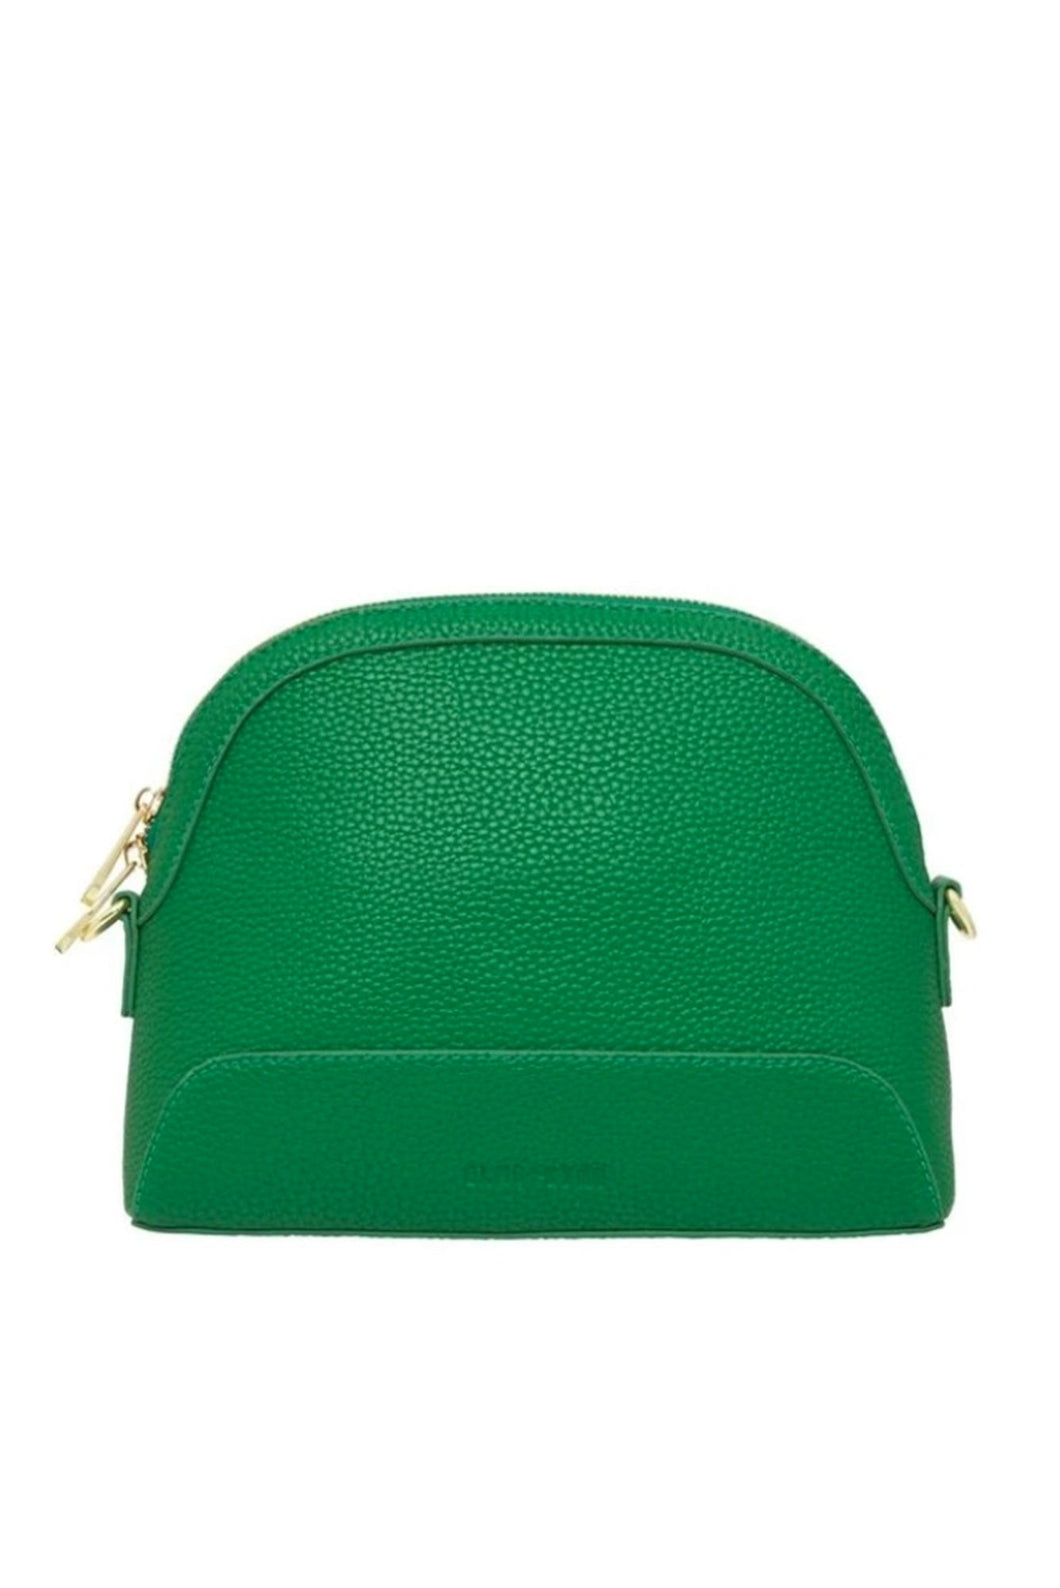 Bronte Green Day Bag